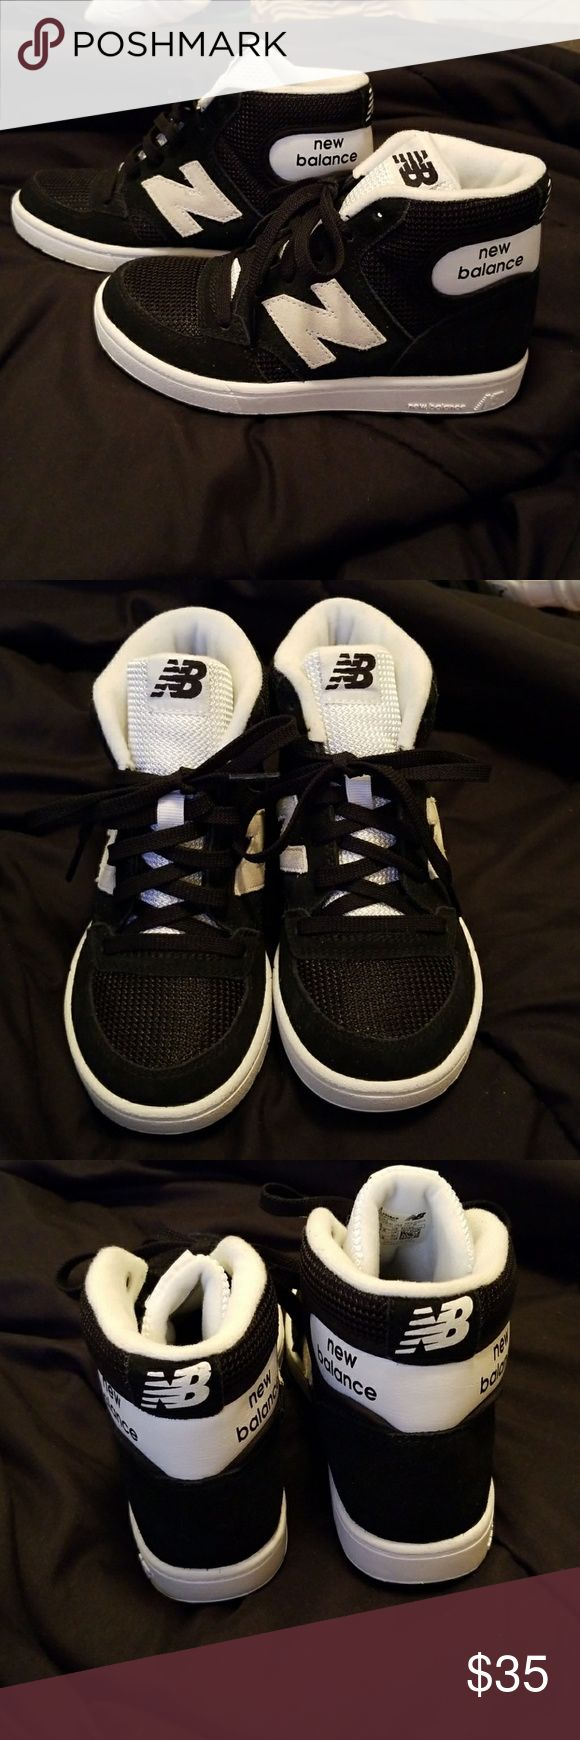 Boy's New Balance Sneakers Brand New Brand nsmew high tops. Never Worn! Stored in closet. Only tried on. No box. Great style! Cute with joggers!!! New Balance Shoes Sneakers